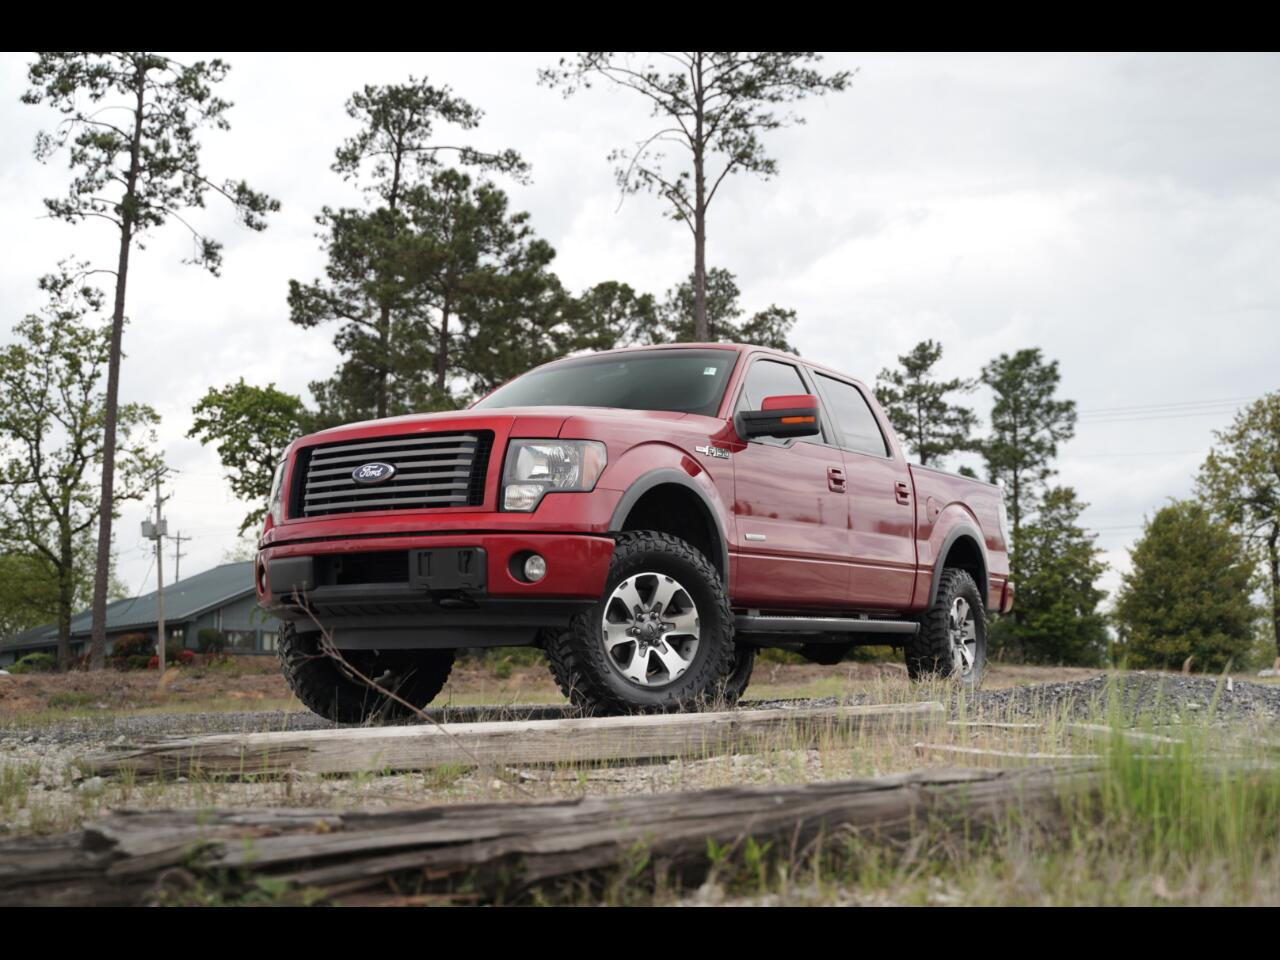 2011 Ford F-150 4wd Super Crew FX4 Lifted Sunroof MXT's